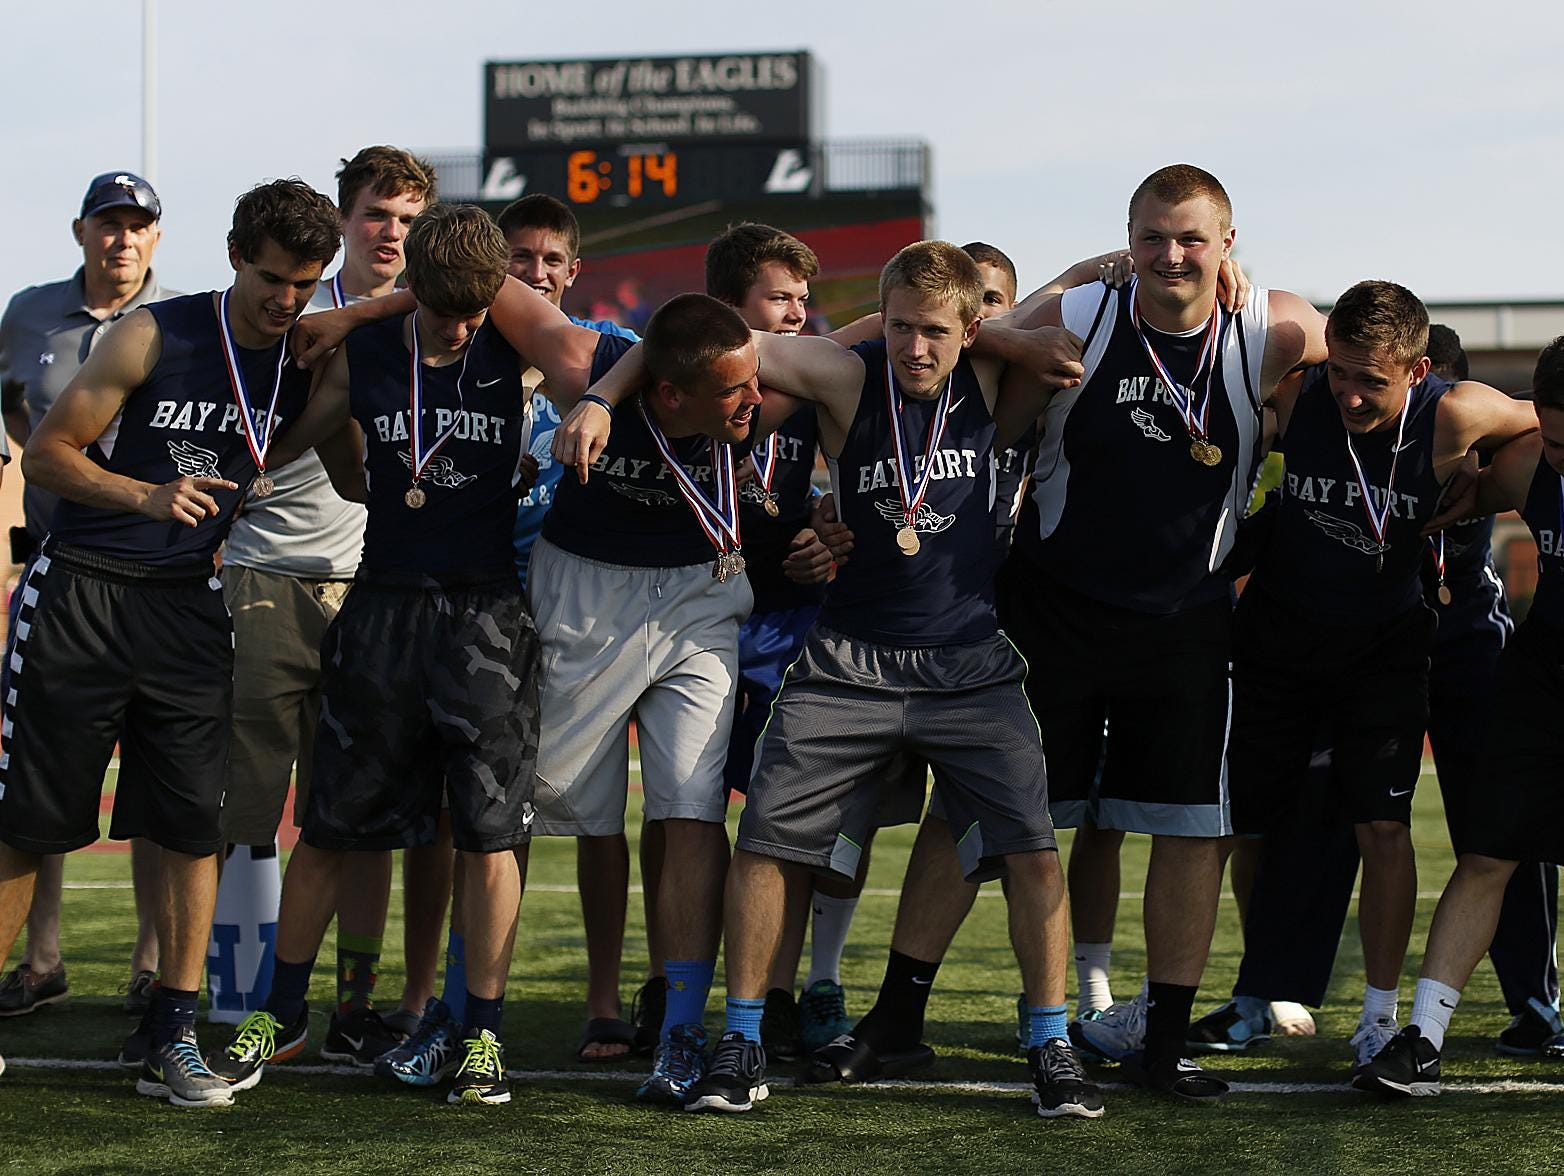 Bay Port track and field teammates huddle up before receiving the championship trophy for winning the Division 1 team title.